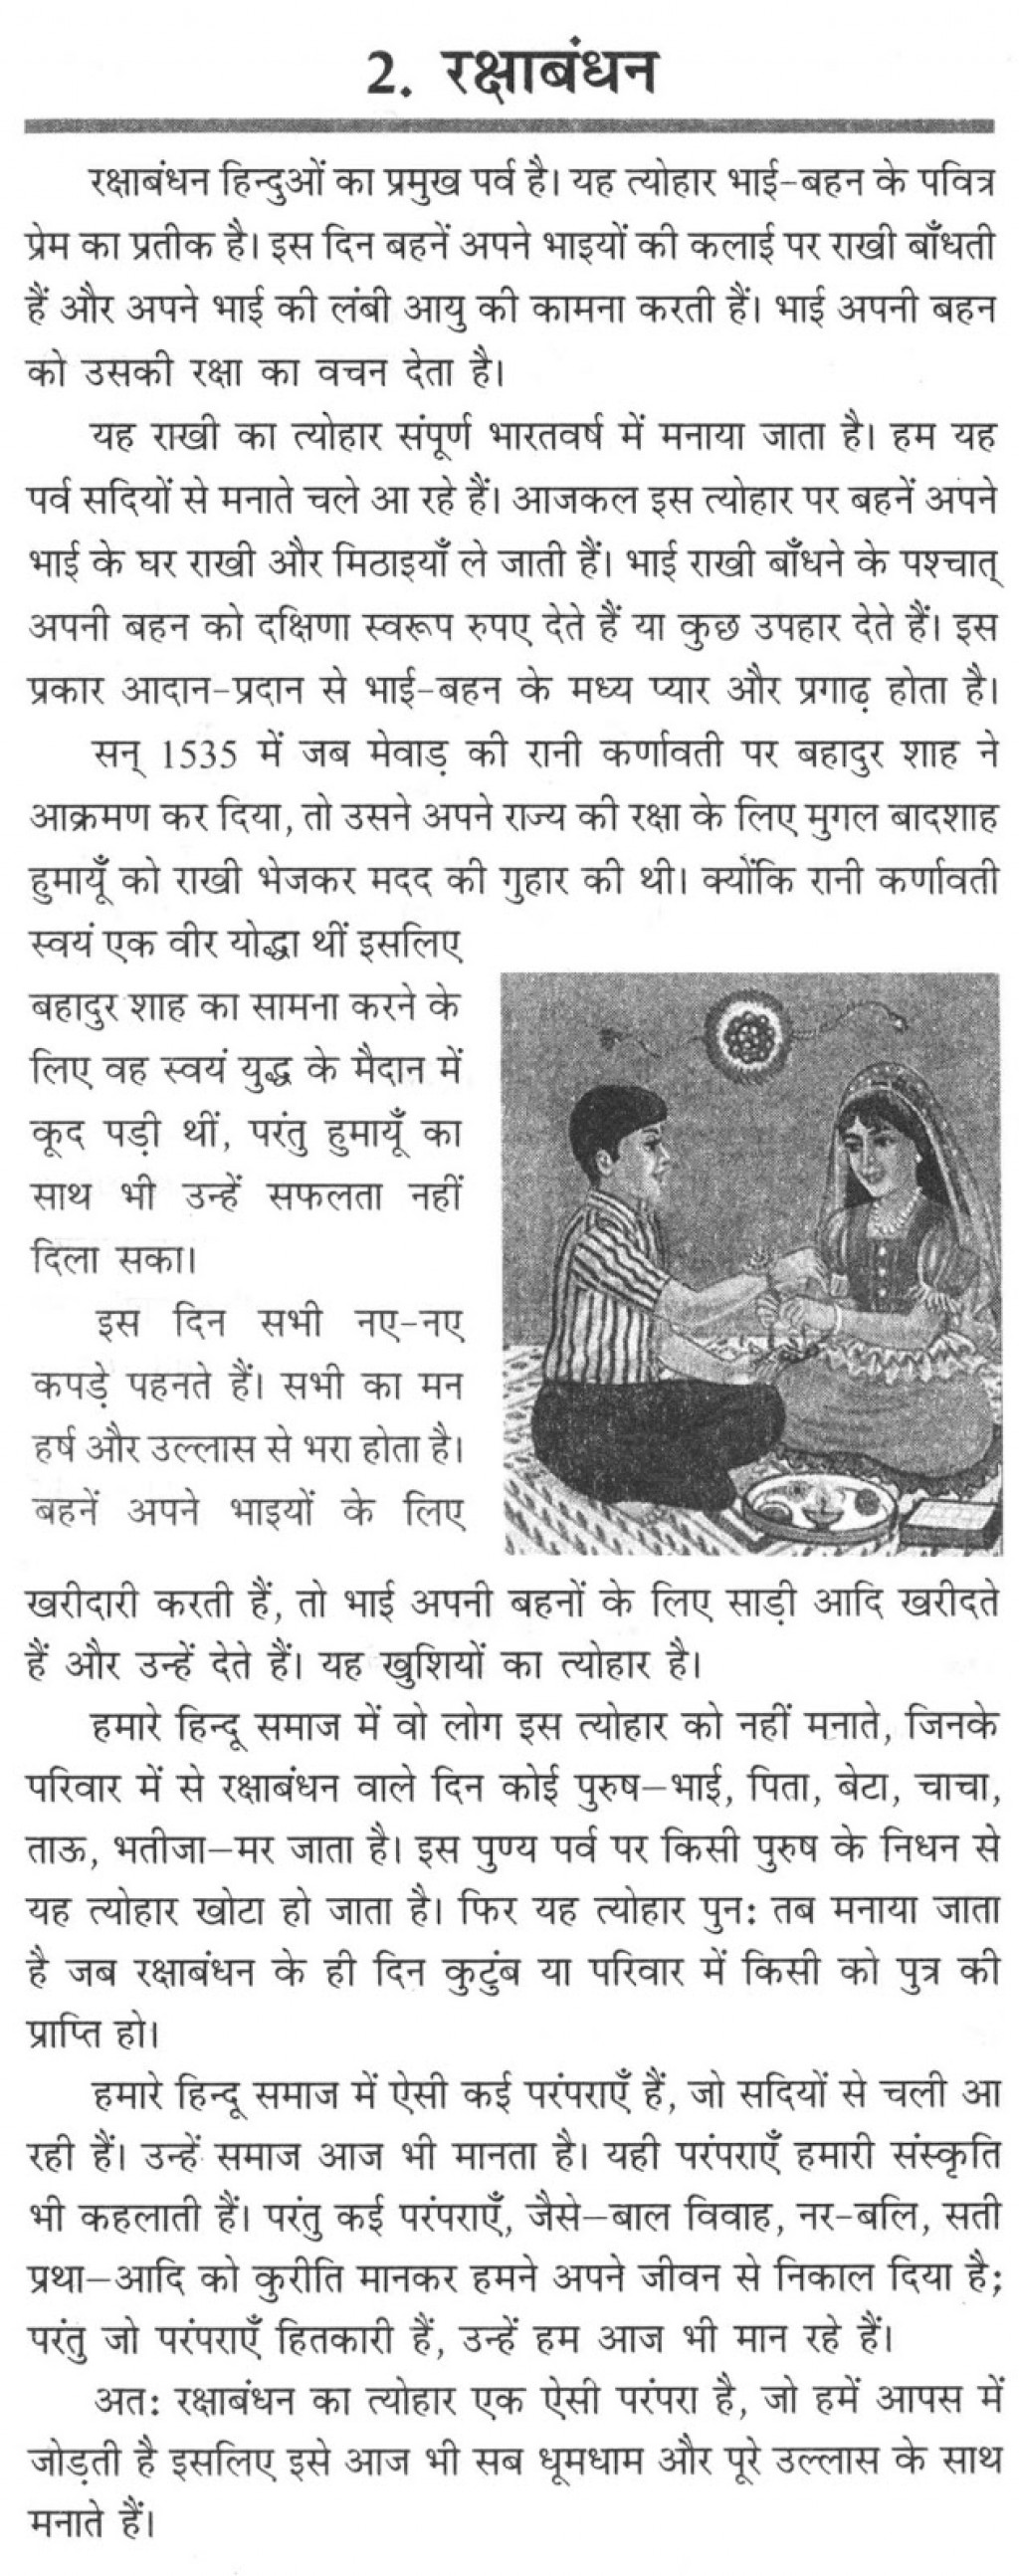 015 Raksha20bandhan20essay20in20hindi202016 Essay Example Good Habits In Exceptional Hindi Bad Eating Habit Large